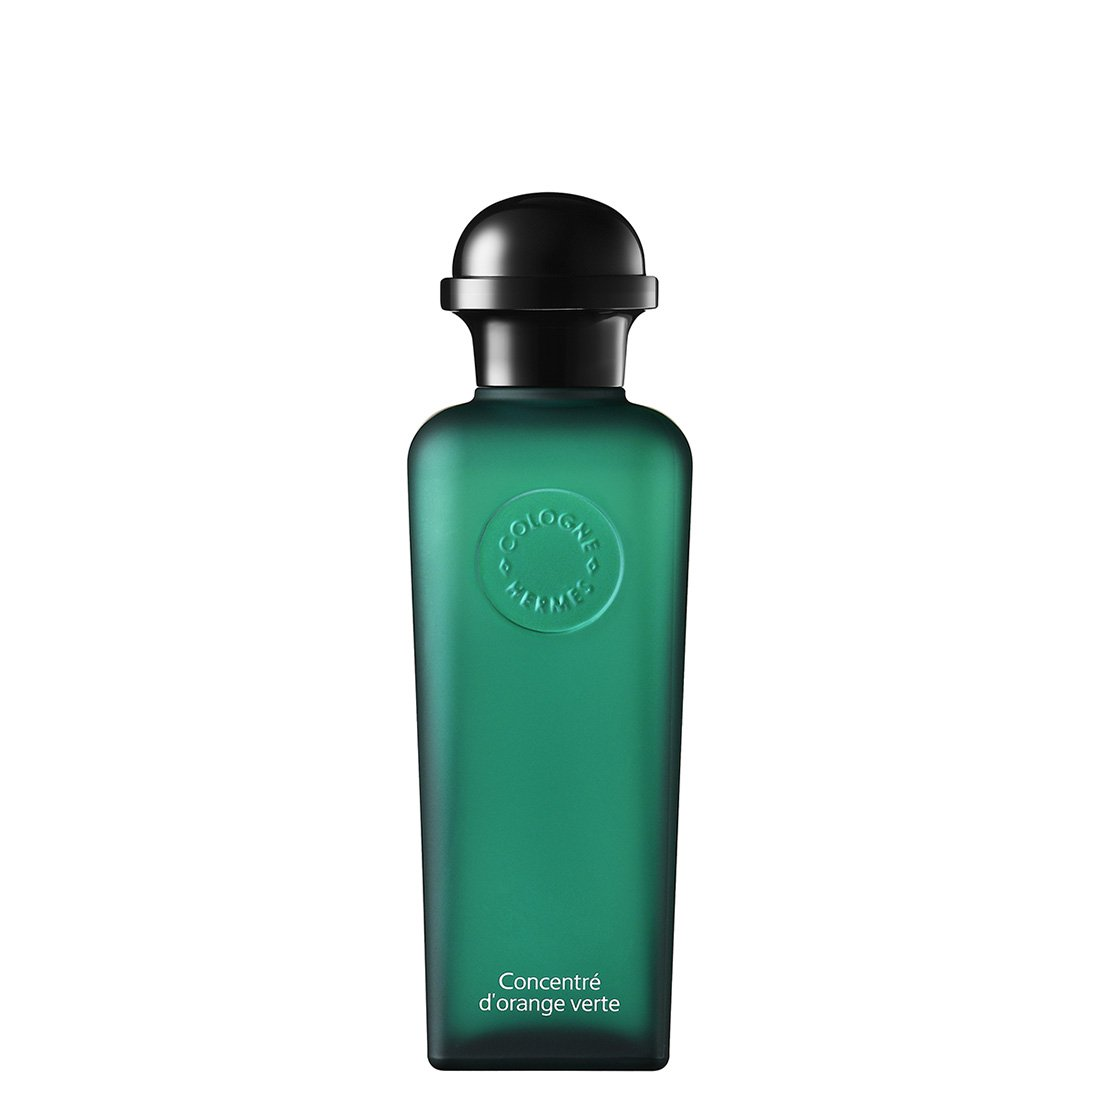 Eau de Toilette Concentré d'orange verte - Hermès